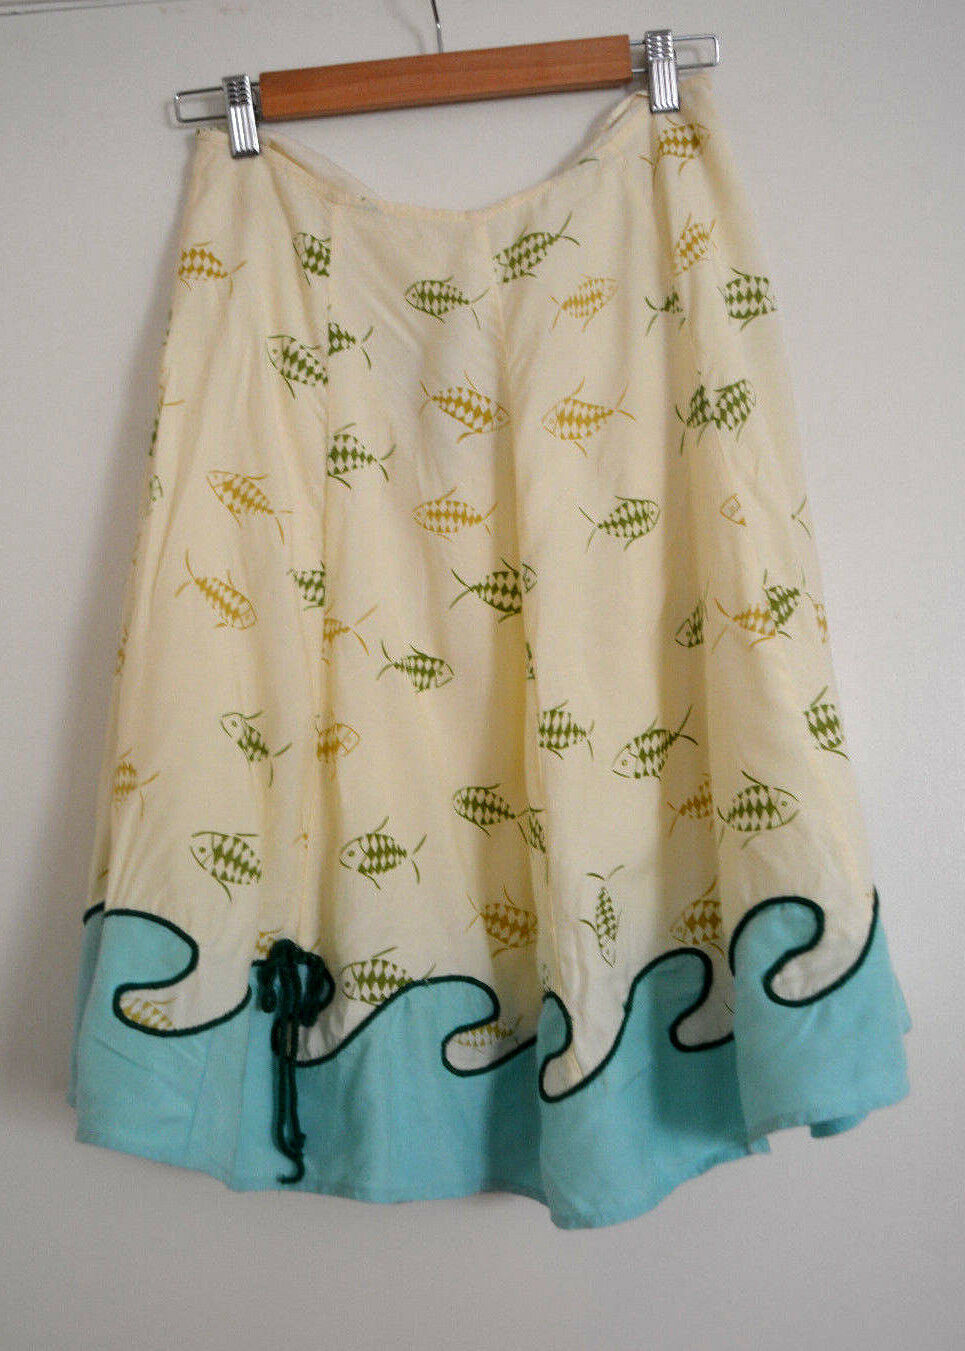 2 NWT Anthropologie Whimsical Fish Wave Skirt Very RARE